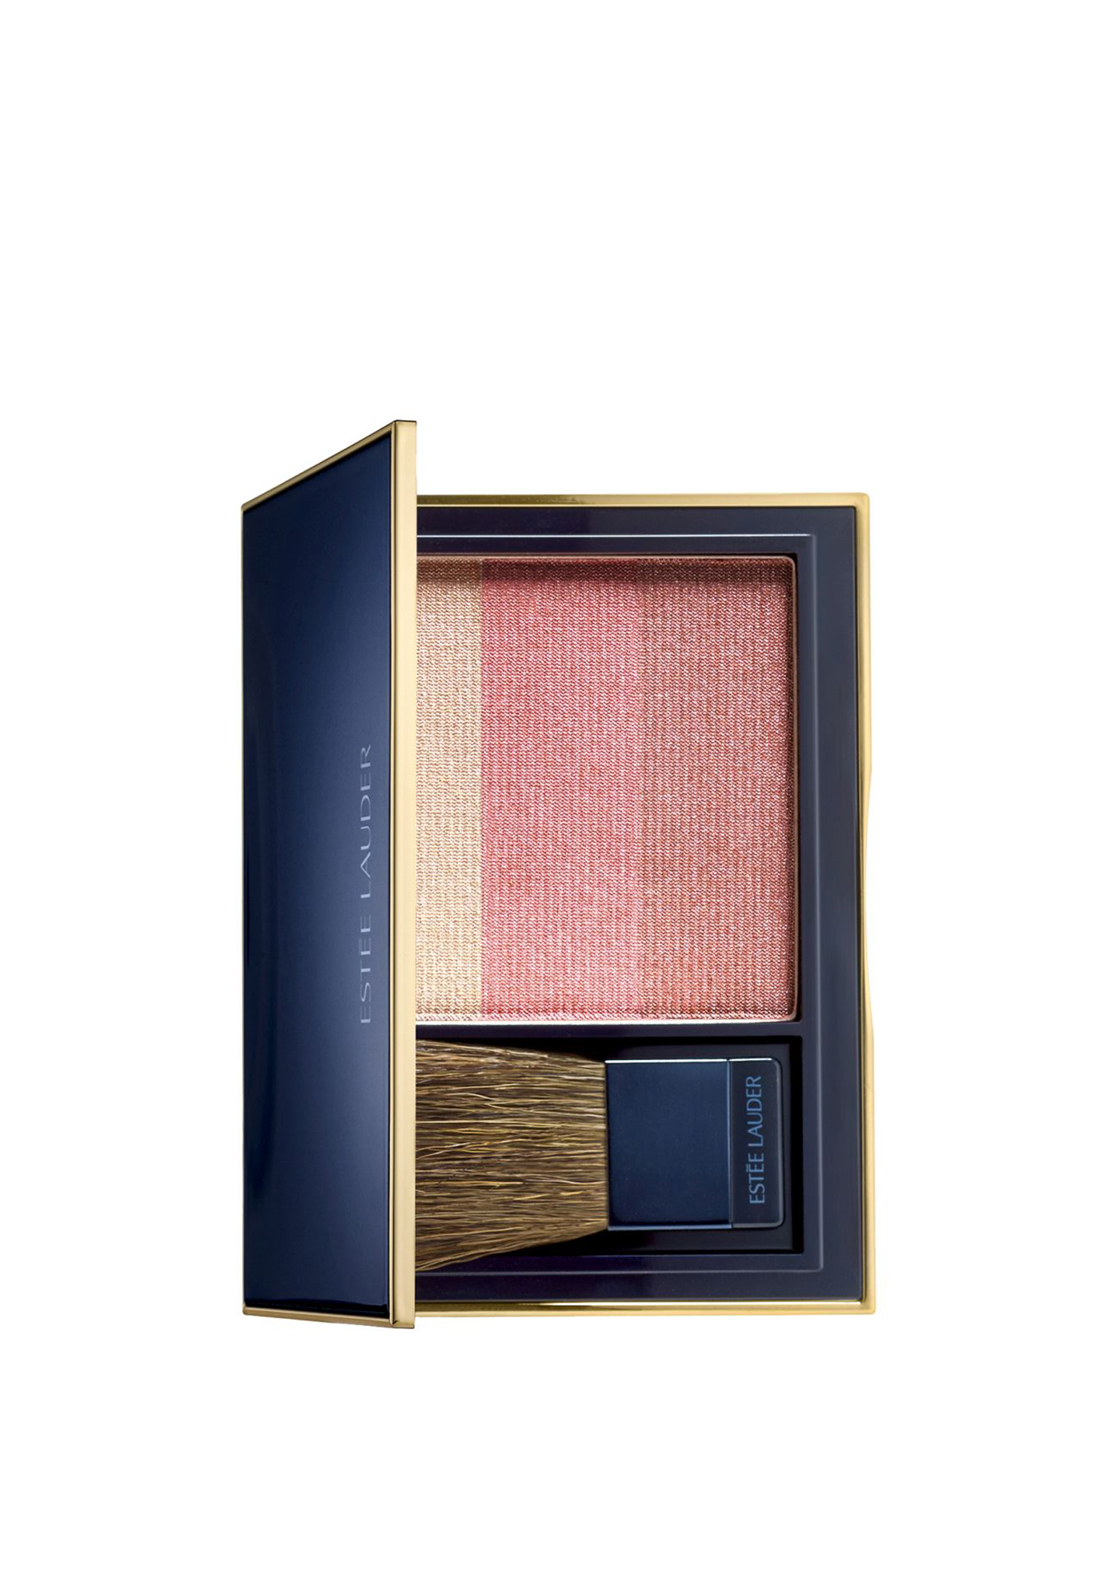 Estee Lauder Pure Colour Envy Shimmering BlushLights, Pink Seduction